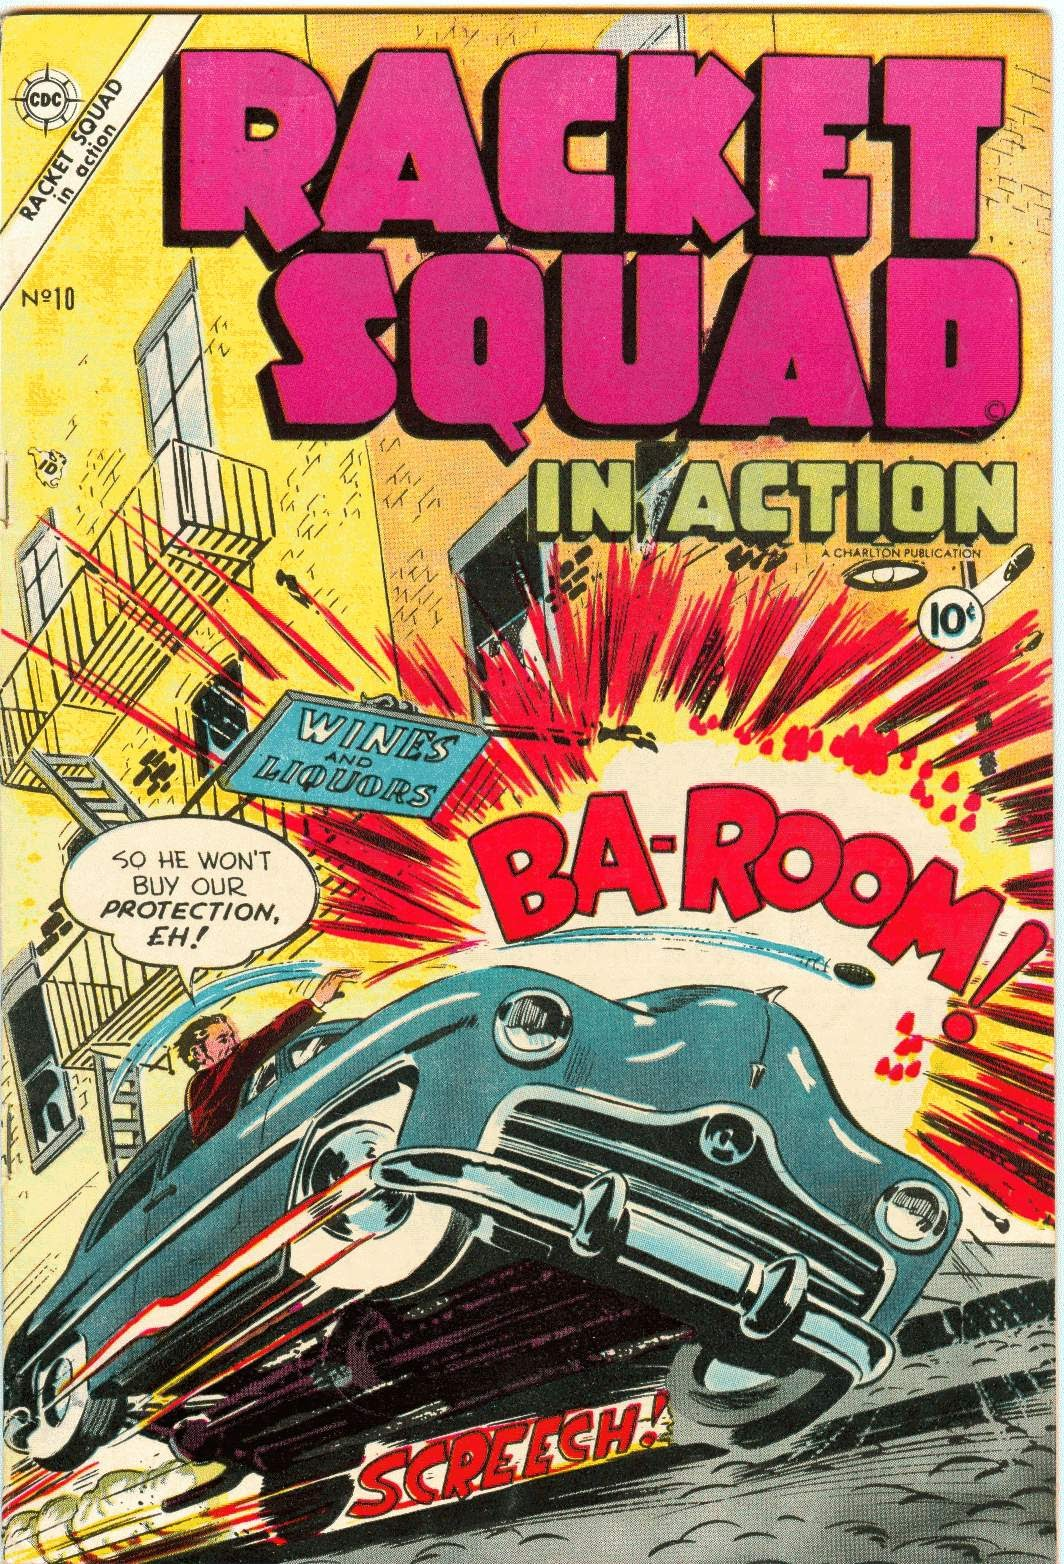 Read online Racket Squad in Action comic -  Issue #10 - 1